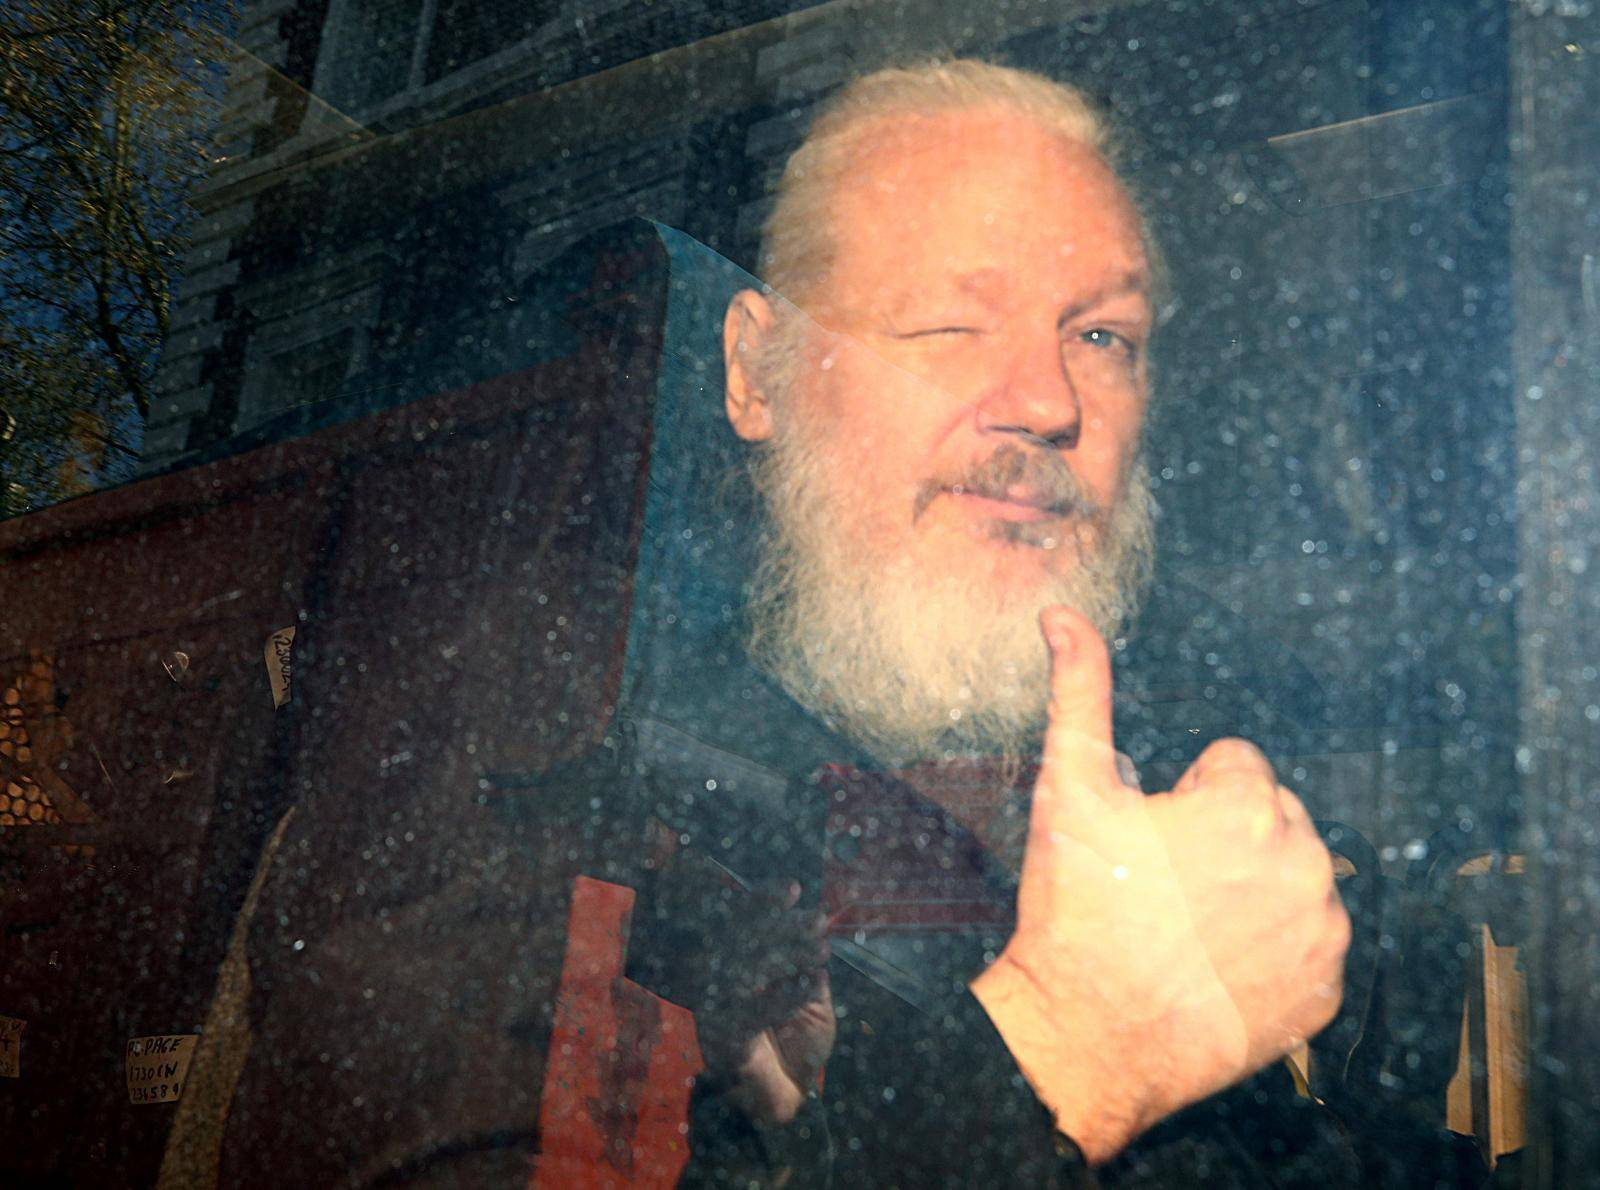 FILE PHOTO: WikiLeaks founder Julian Assange arrives at the Westminster Magistrates Court, after he was arrested  in London